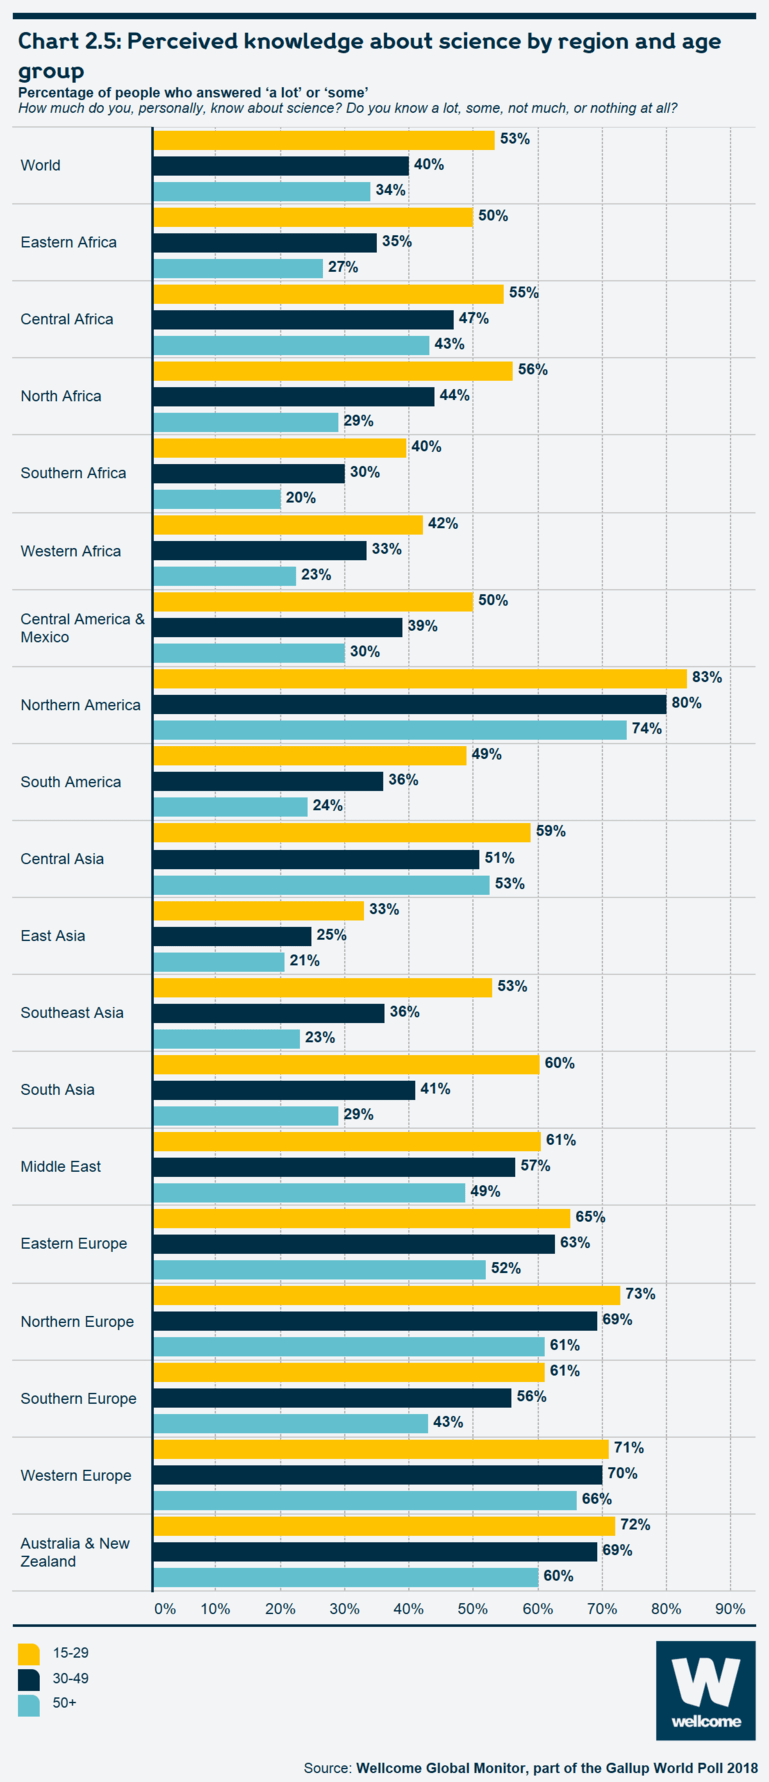 Chart 2.5: Perceived knowledge about science by region and age group